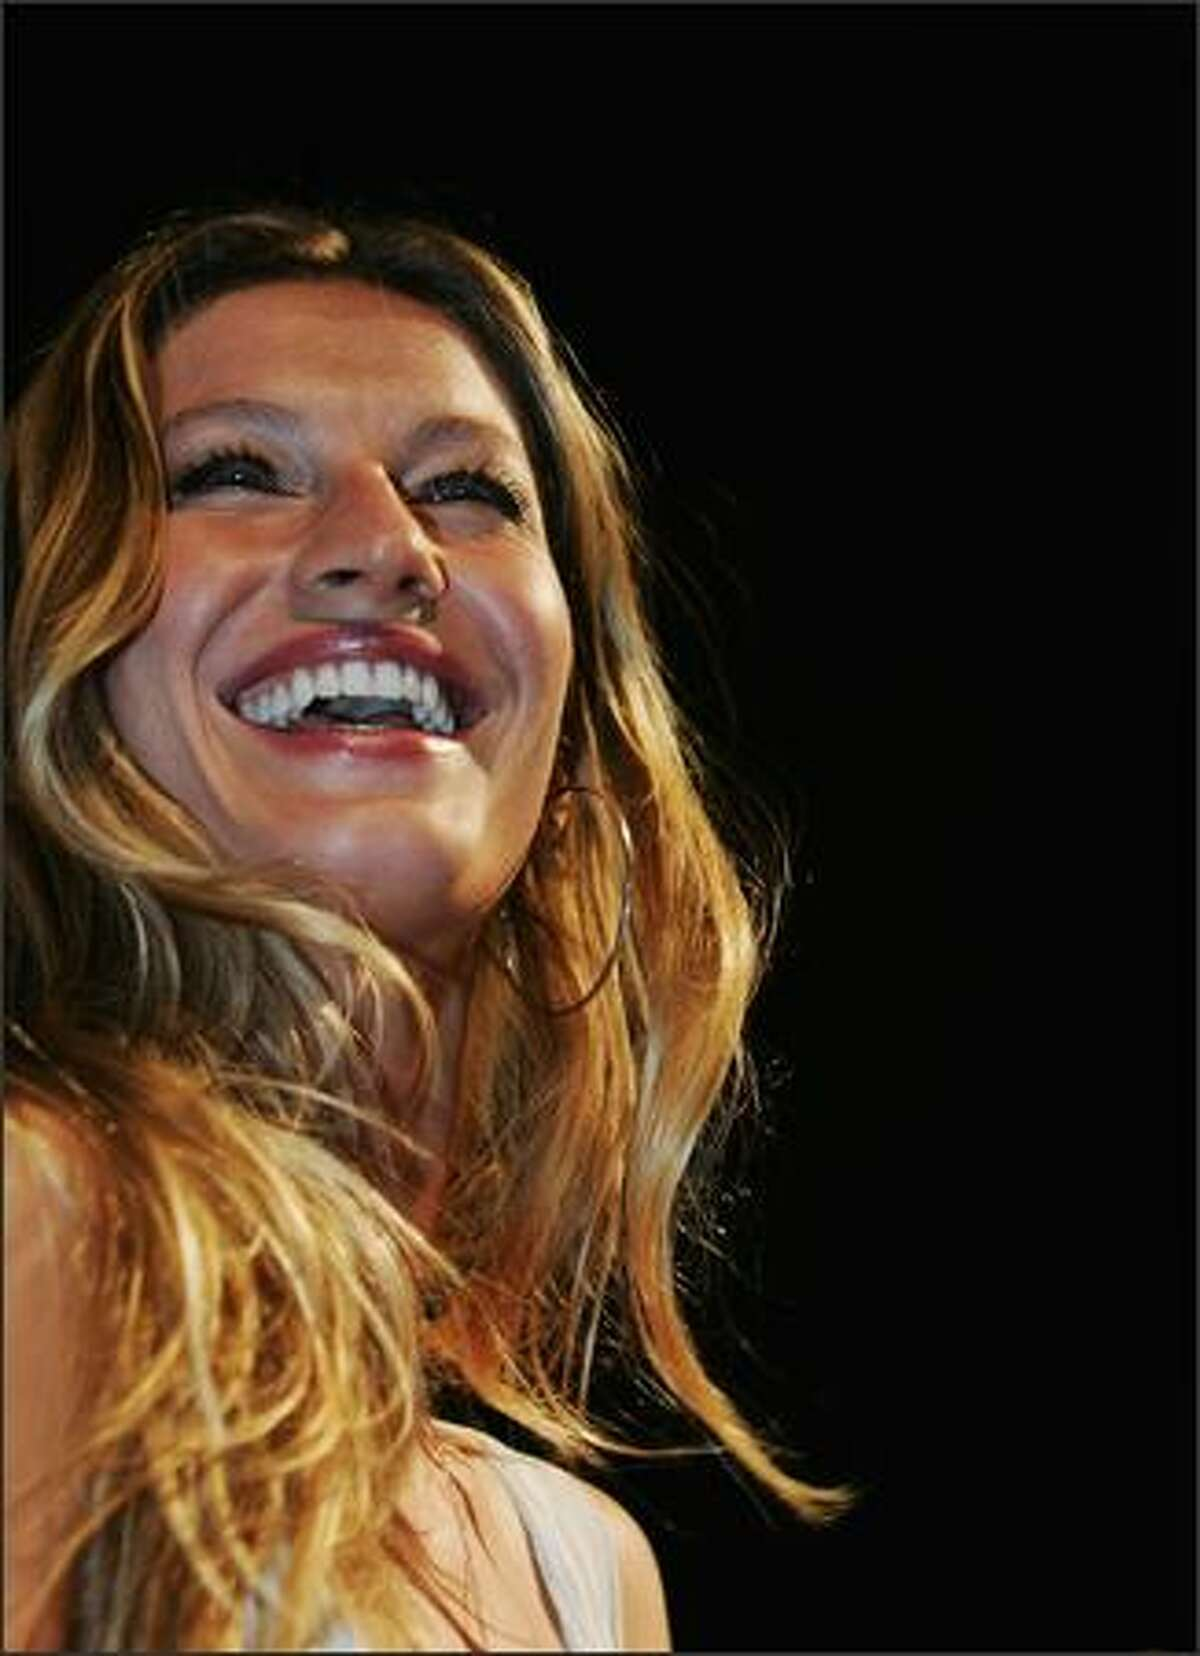 Supermodel Gisele Bundchen arrives at her new footwear collection launch